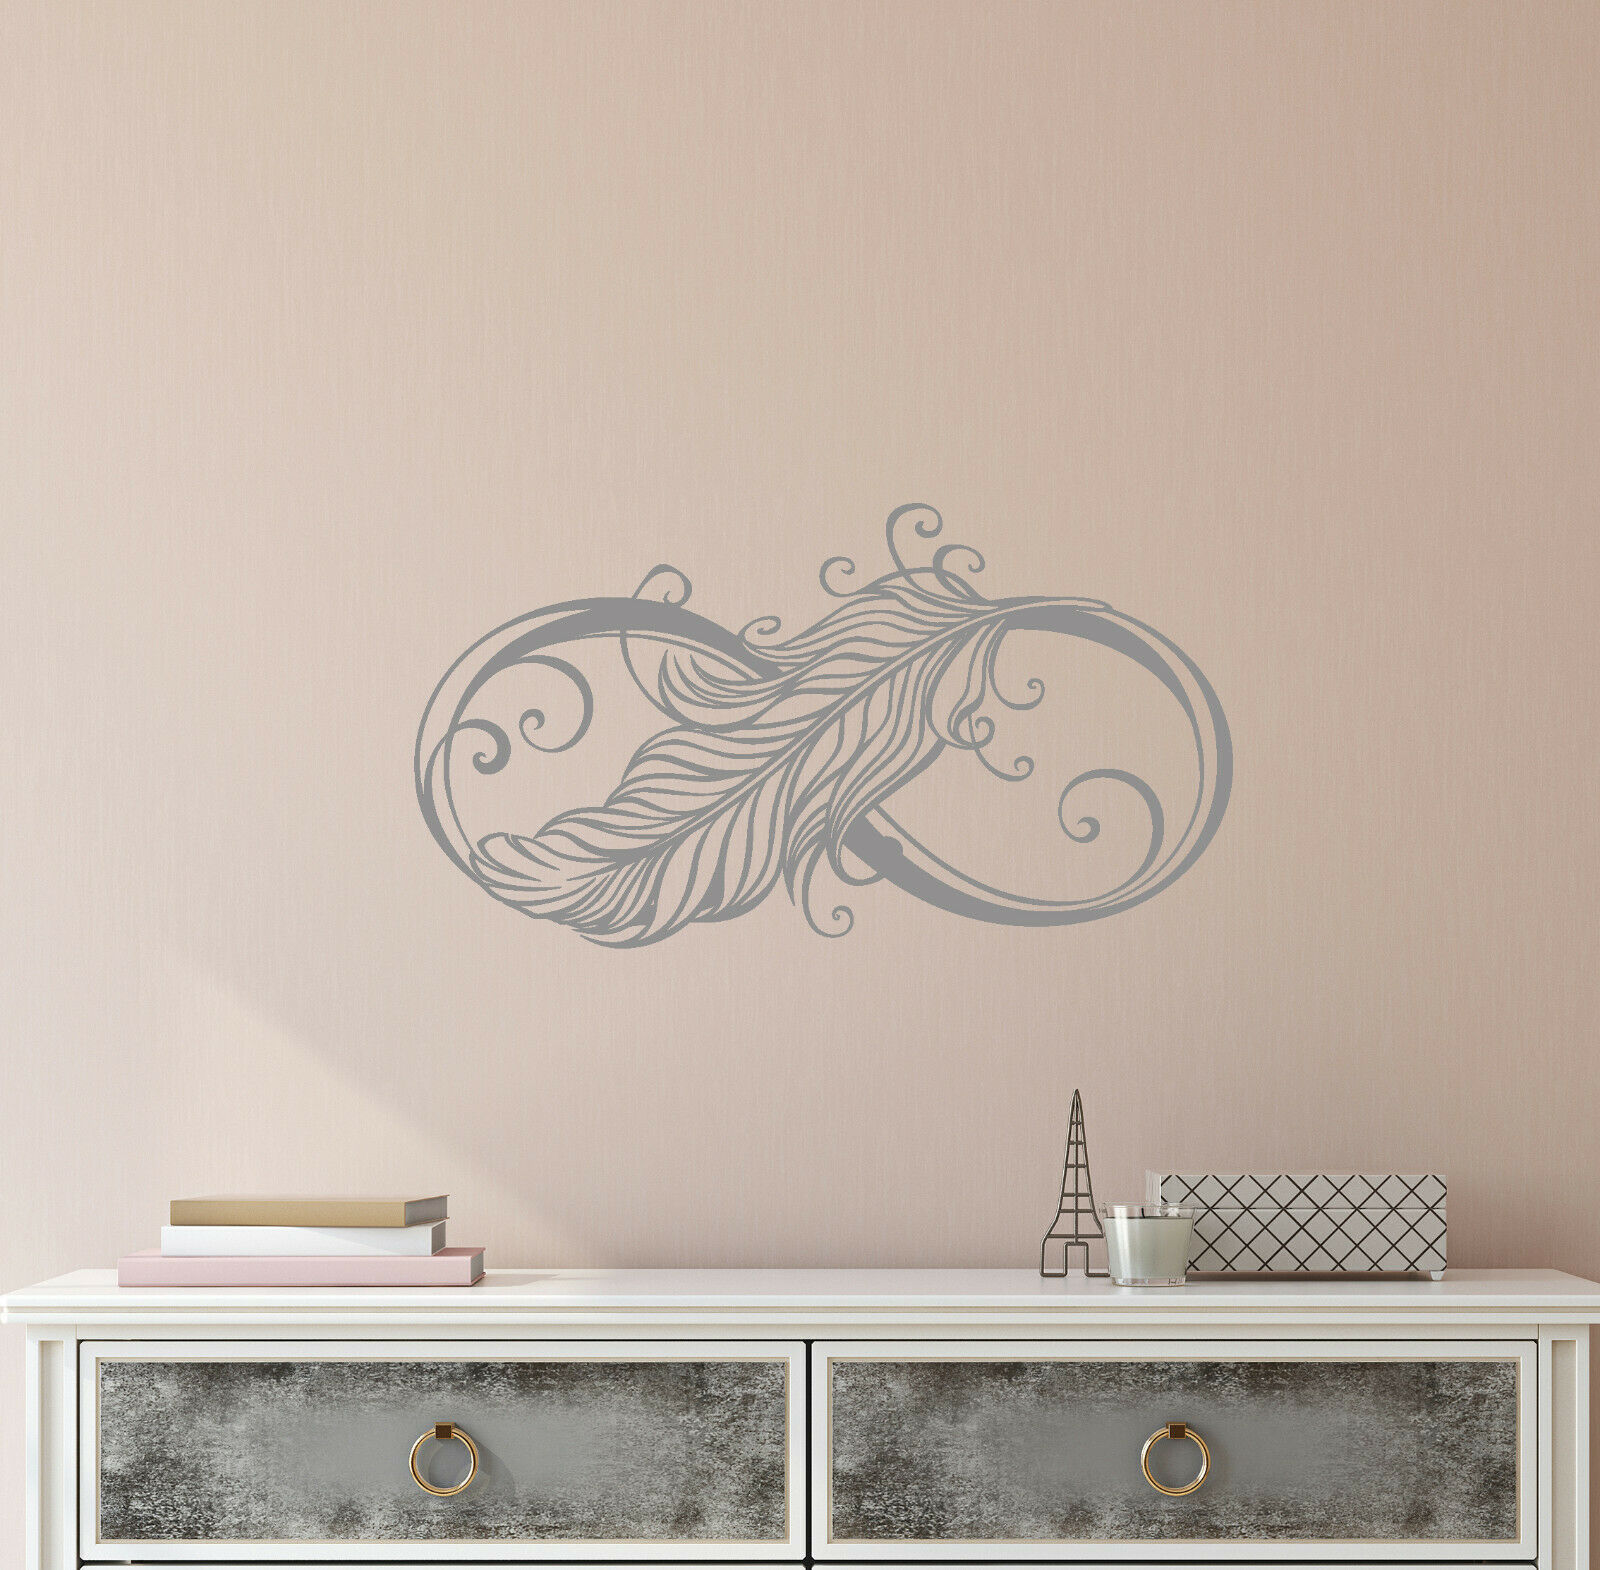 Vinyl Wall Decal Infinity Sign Symbol Ornament Bird Feather Stickers (4066ig)